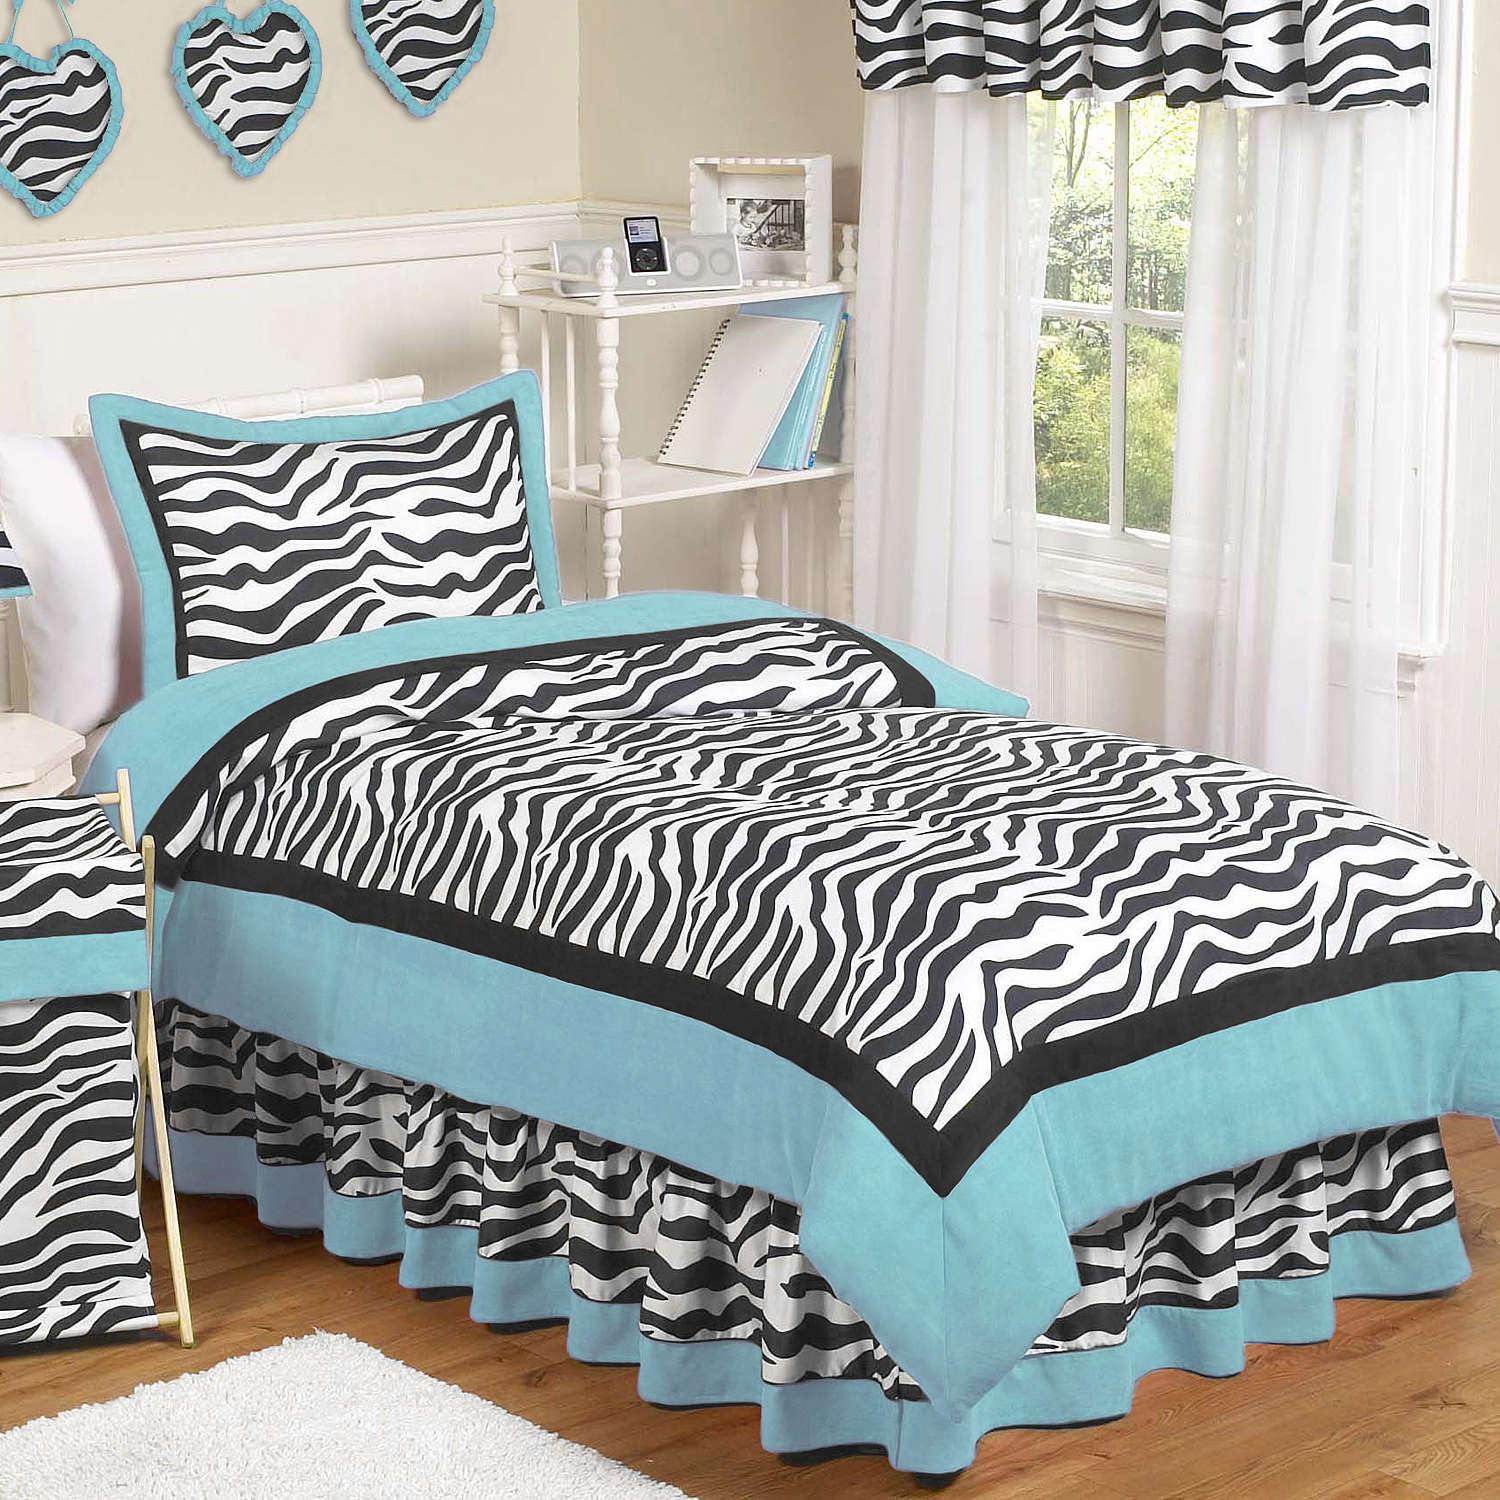 Turquoise Bed Sheet Combination Black And White In Minimalist Bedroom With  White Rug Table And Curtains